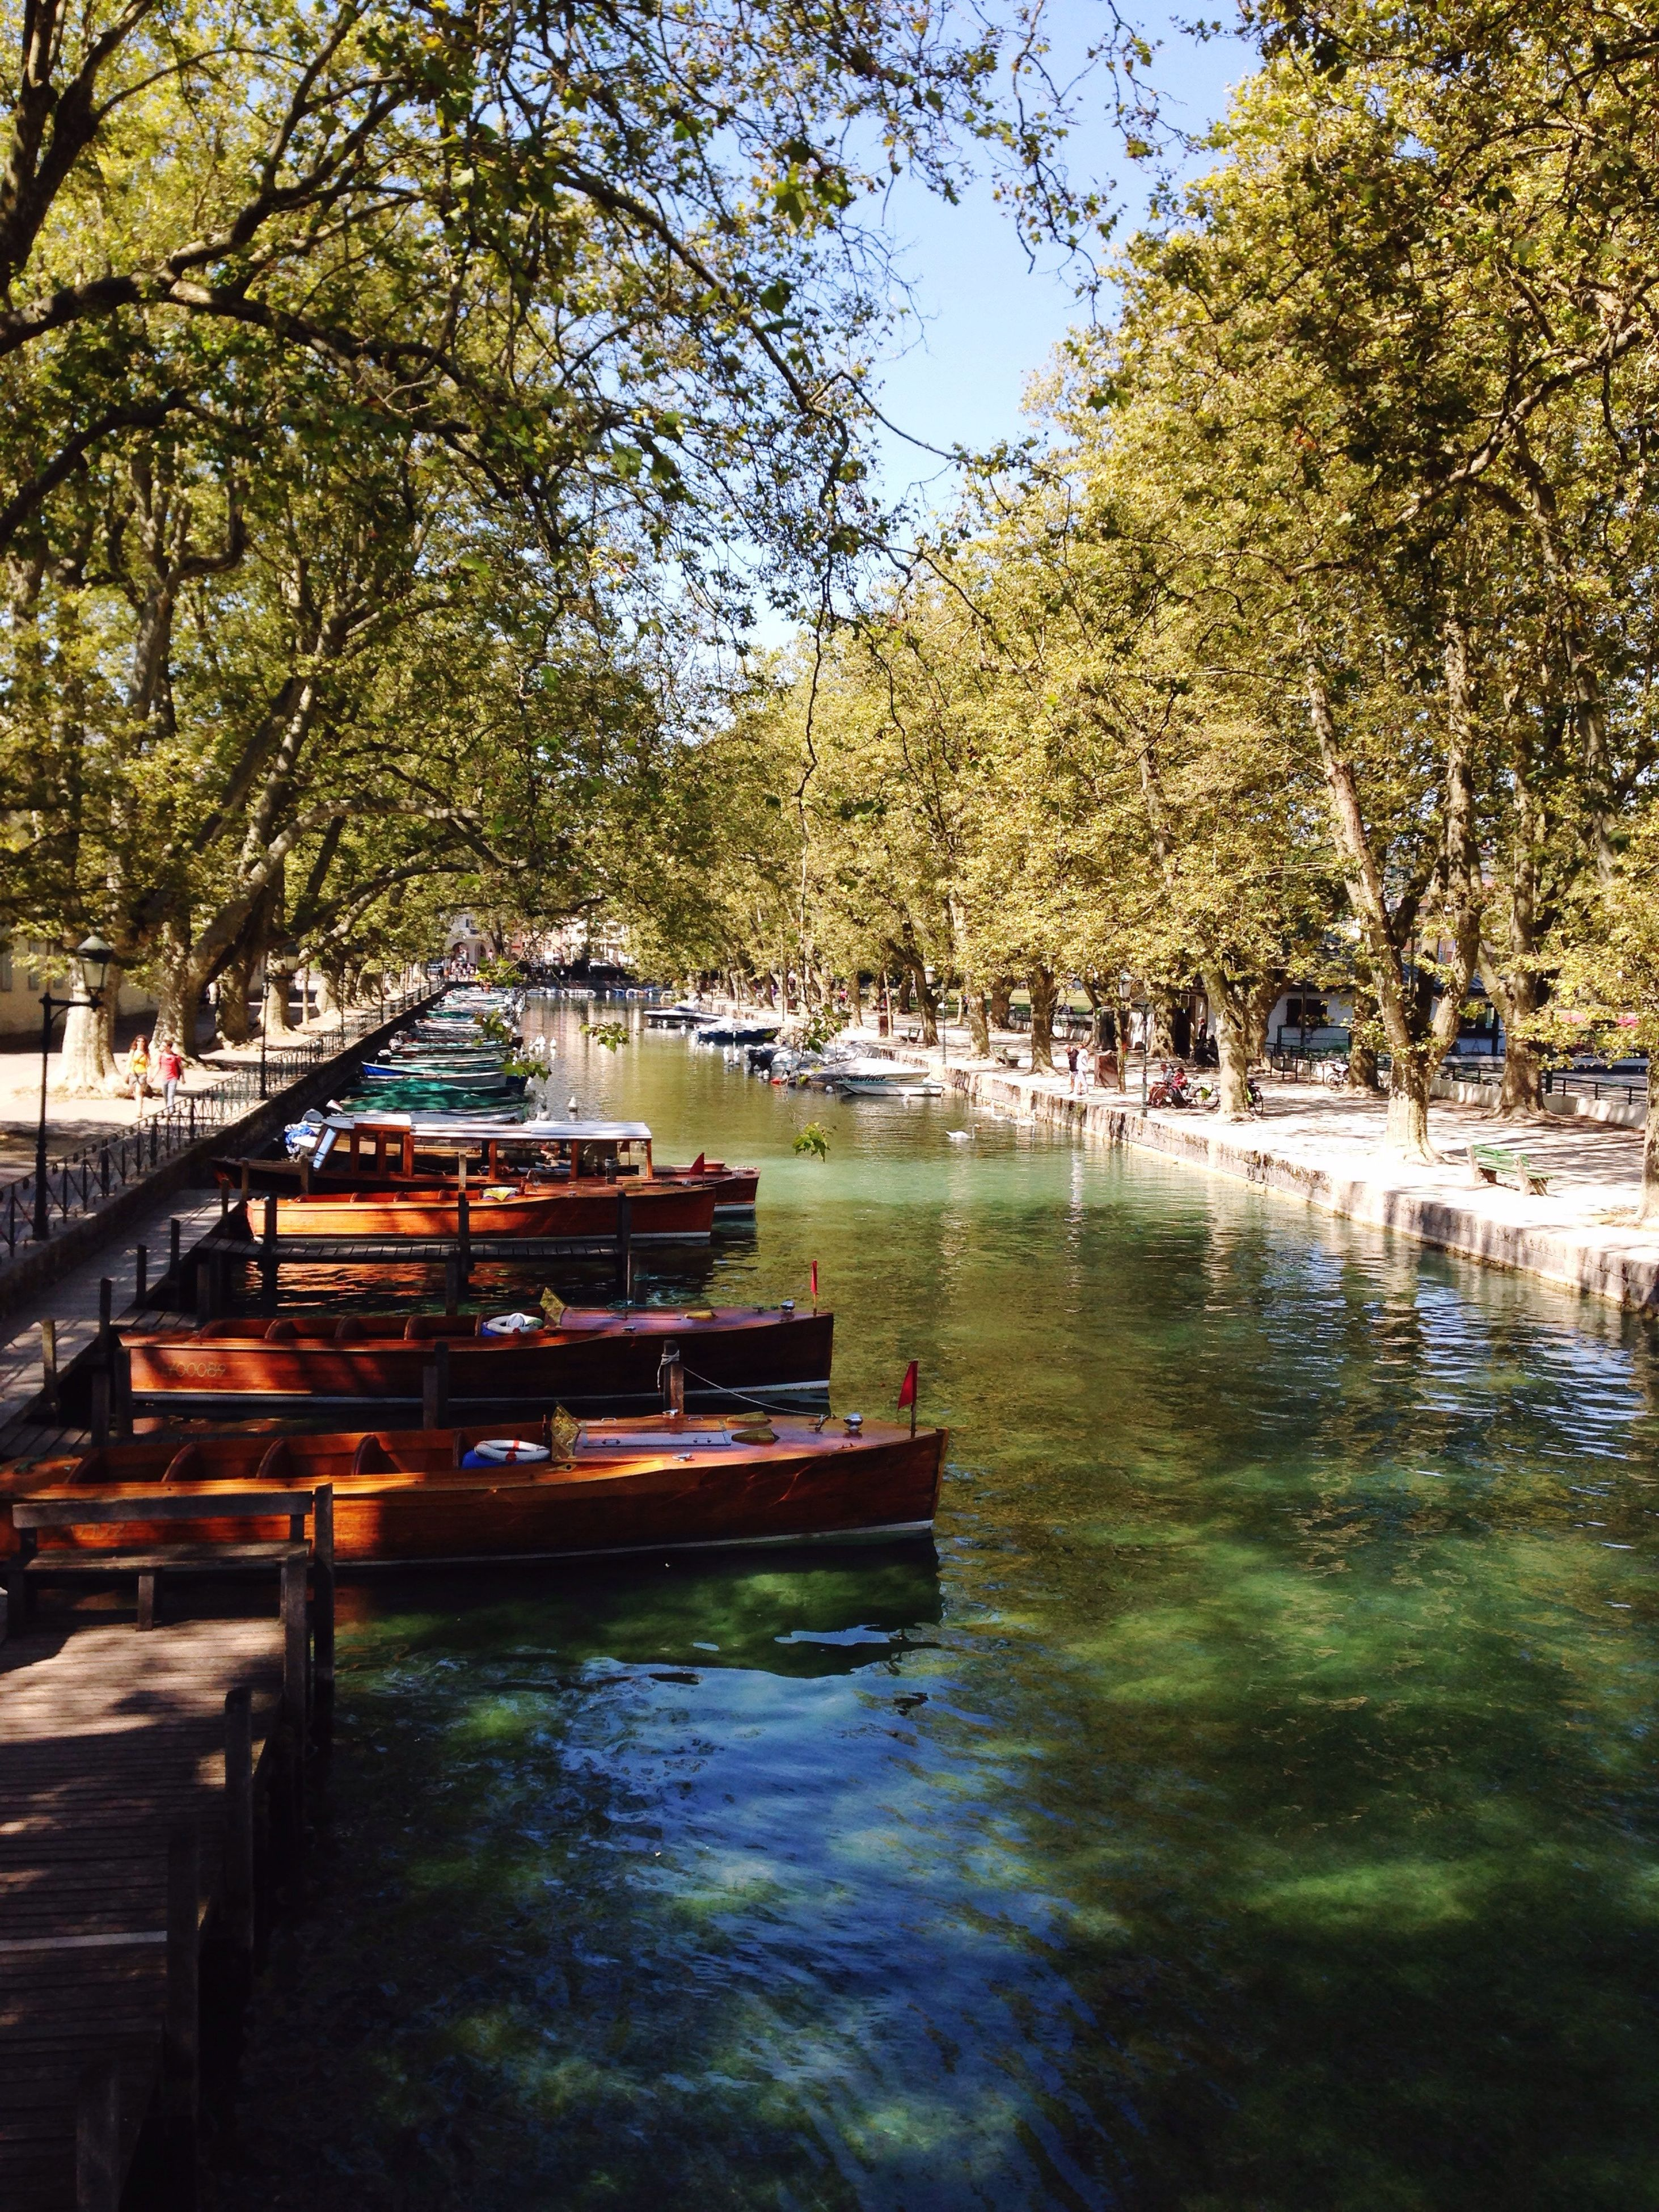 tree, water, boat, tranquil scene, growth, tranquility, nature, travel destinations, canal, scenics, in a row, branch, green color, day, non-urban scene, outdoors, waterfront, sky, tourism, beauty in nature